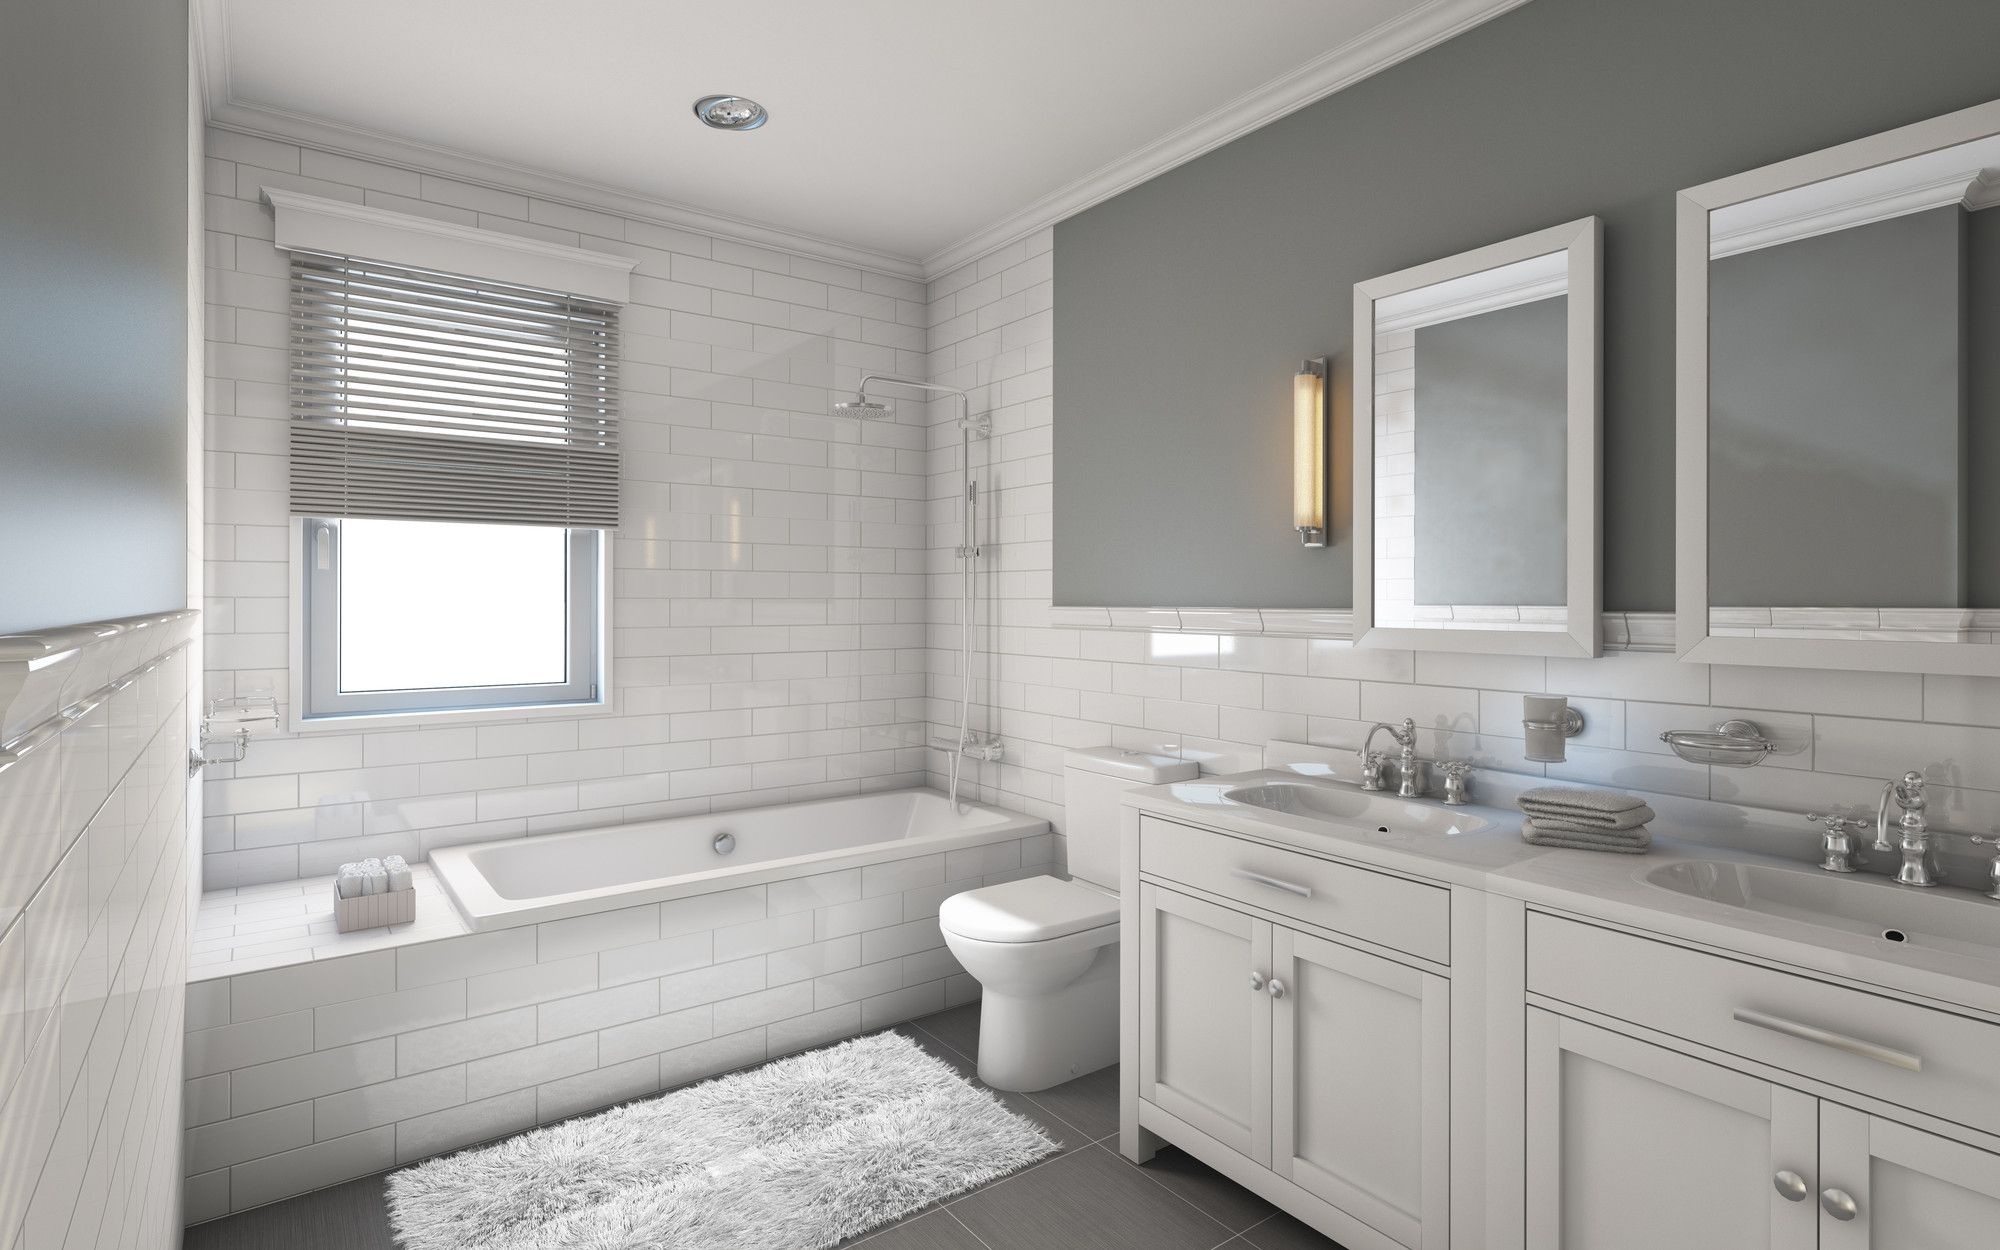 One Of The Largest Kitchen And Bathroom Showrooms In The Uk Hts Studios Visit Our Bathroom Bathroom Remodel Cost Small Bathroom Remodel White Master Bathroom